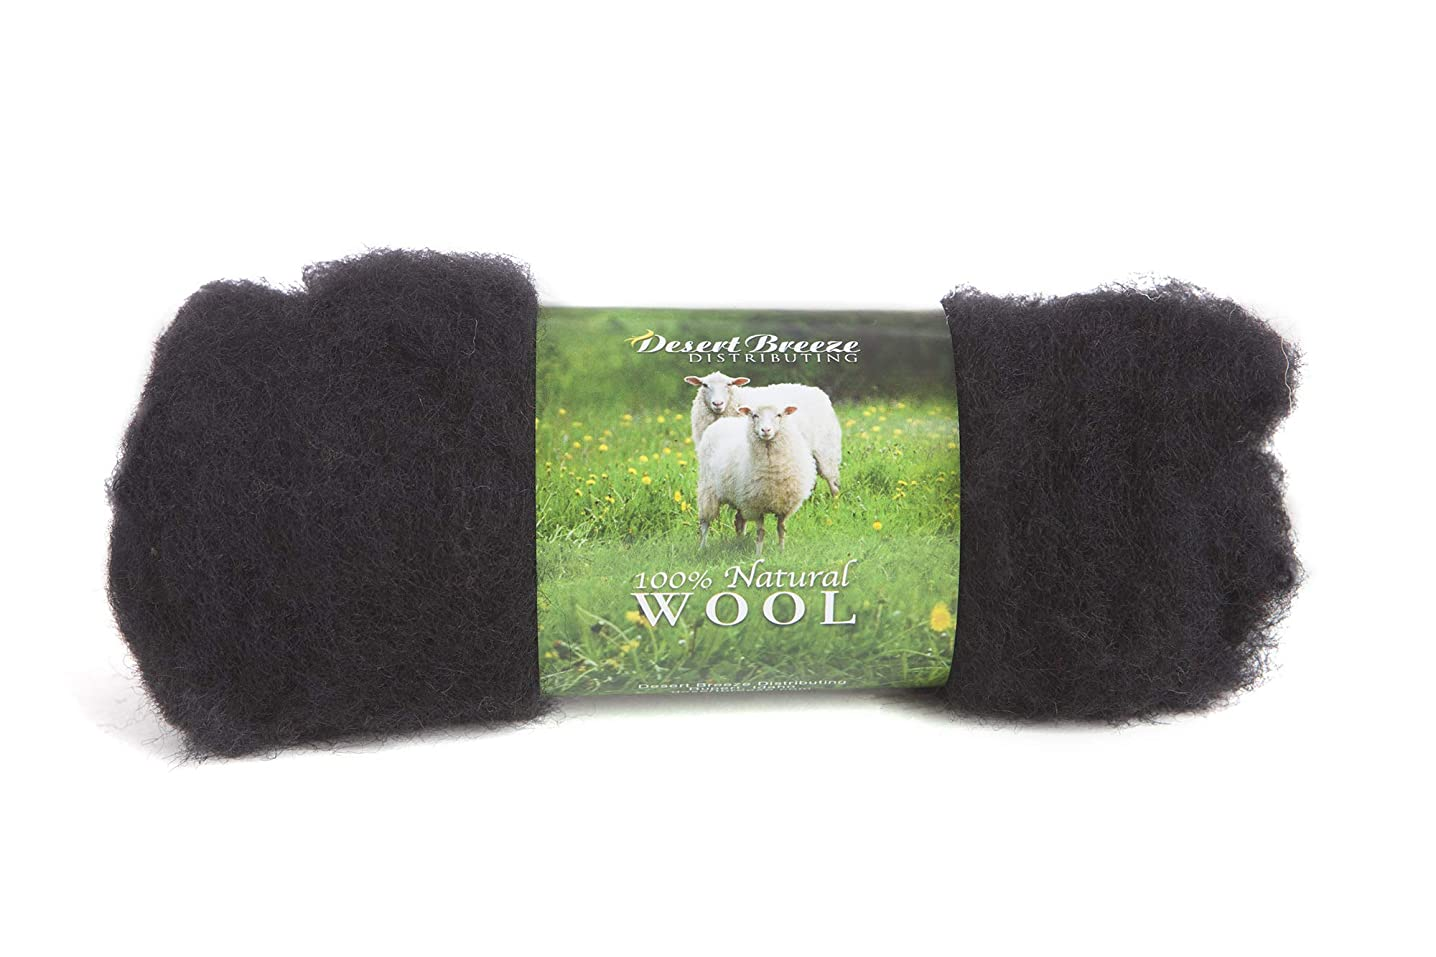 Maori Wool - A Special Blend of New Zealand Wools by DHG for Needle Felting and Wet Felting, 1 OZ Carded Wool Batt, 100% Pure Wool, Color Ebony Black